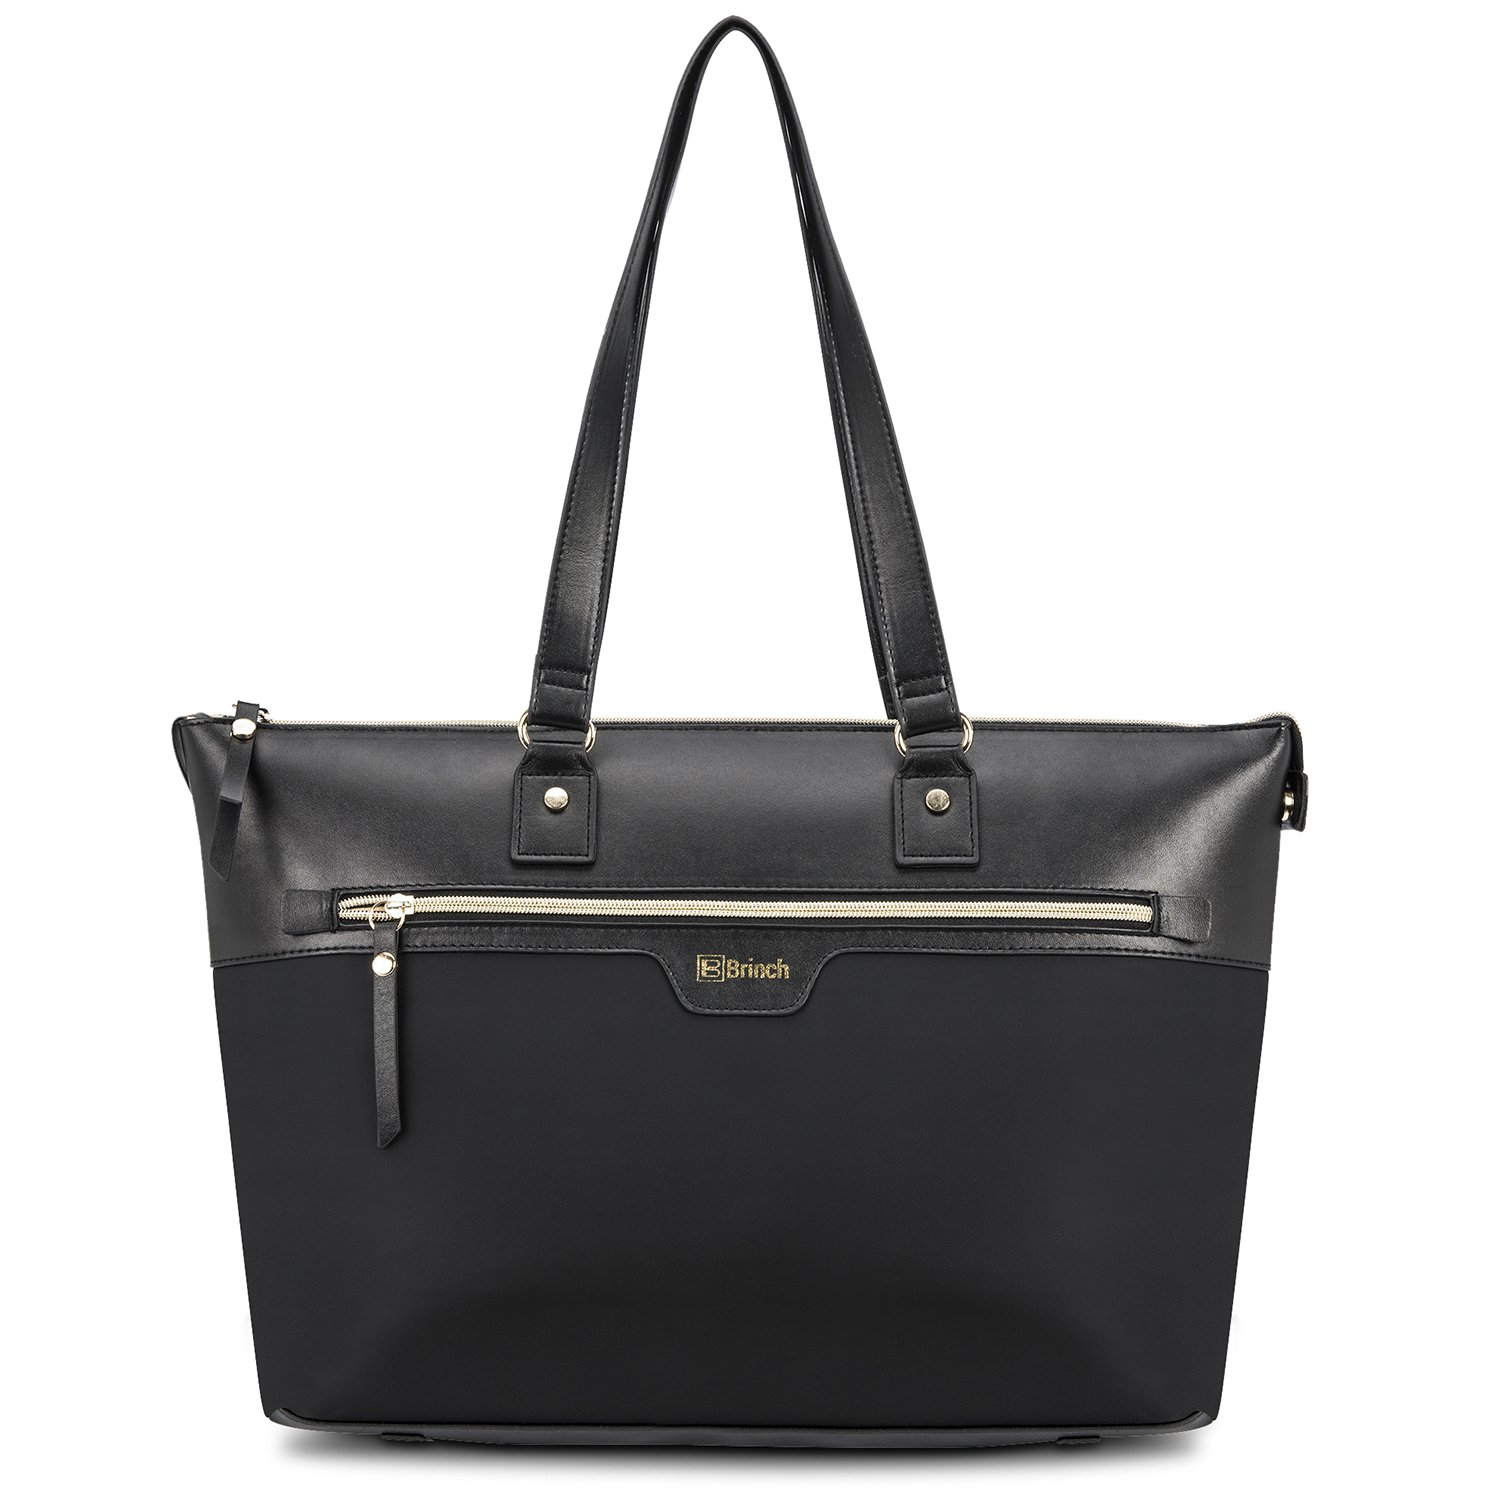 """15.6 Inch Laptop Tote Bag for Women,Fashion Lightweight Ladies Business Computer Handbag Purse PC Carrying Briefcase Multi-Pocket Roomy Bag with Zipper for Work,Fits 13"""",14"""",15.6"""" Laptops,Black"""